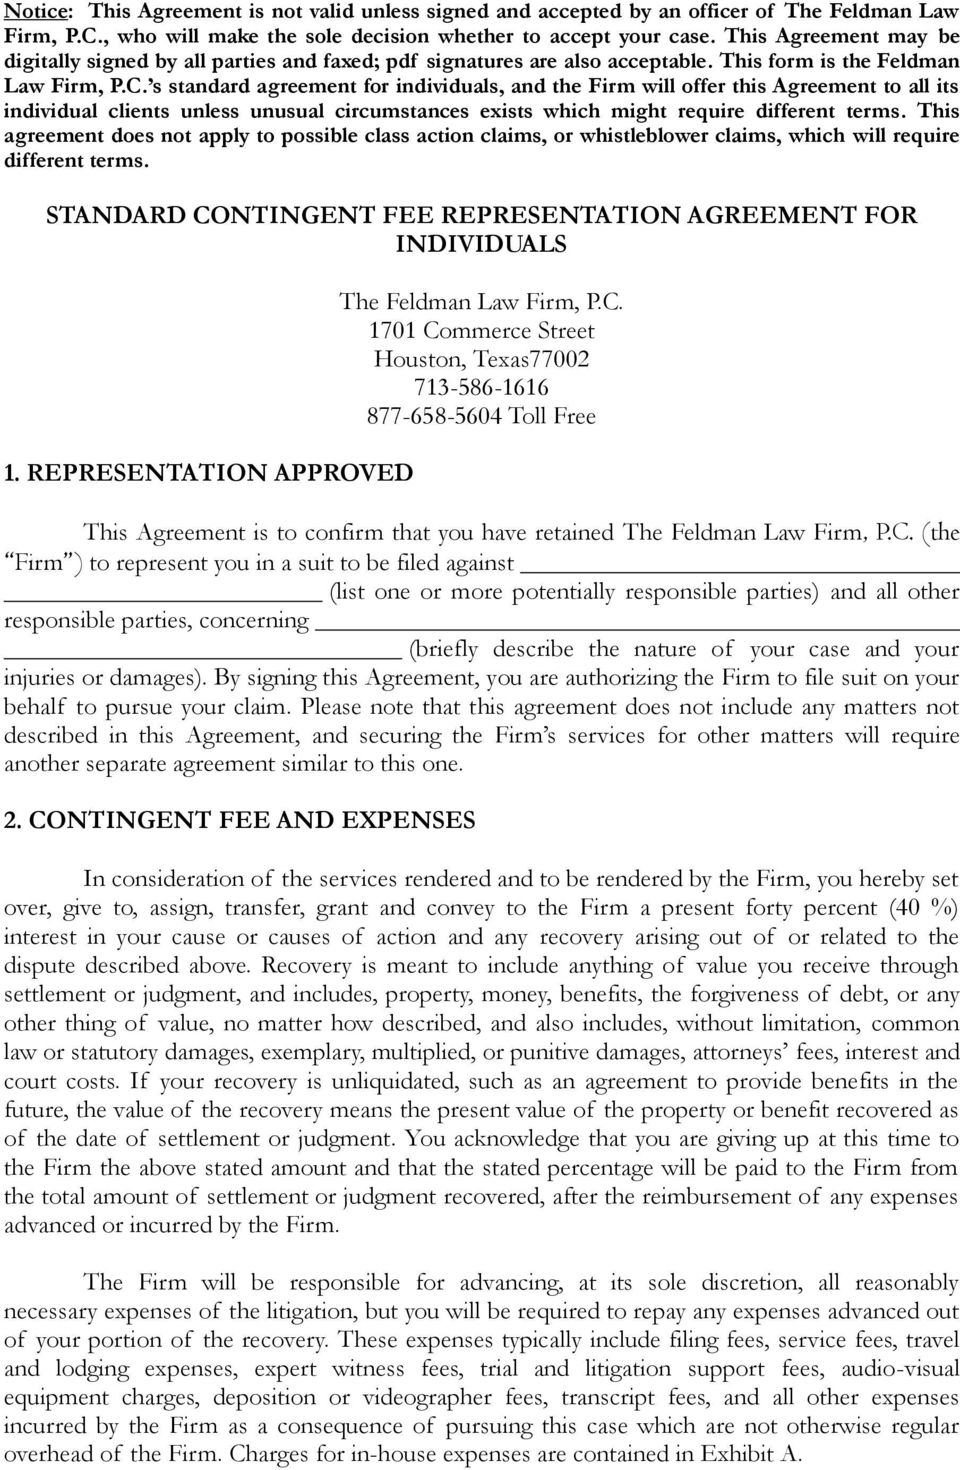 Standard Contingent Fee Representation Agreement For Individuals Pdf